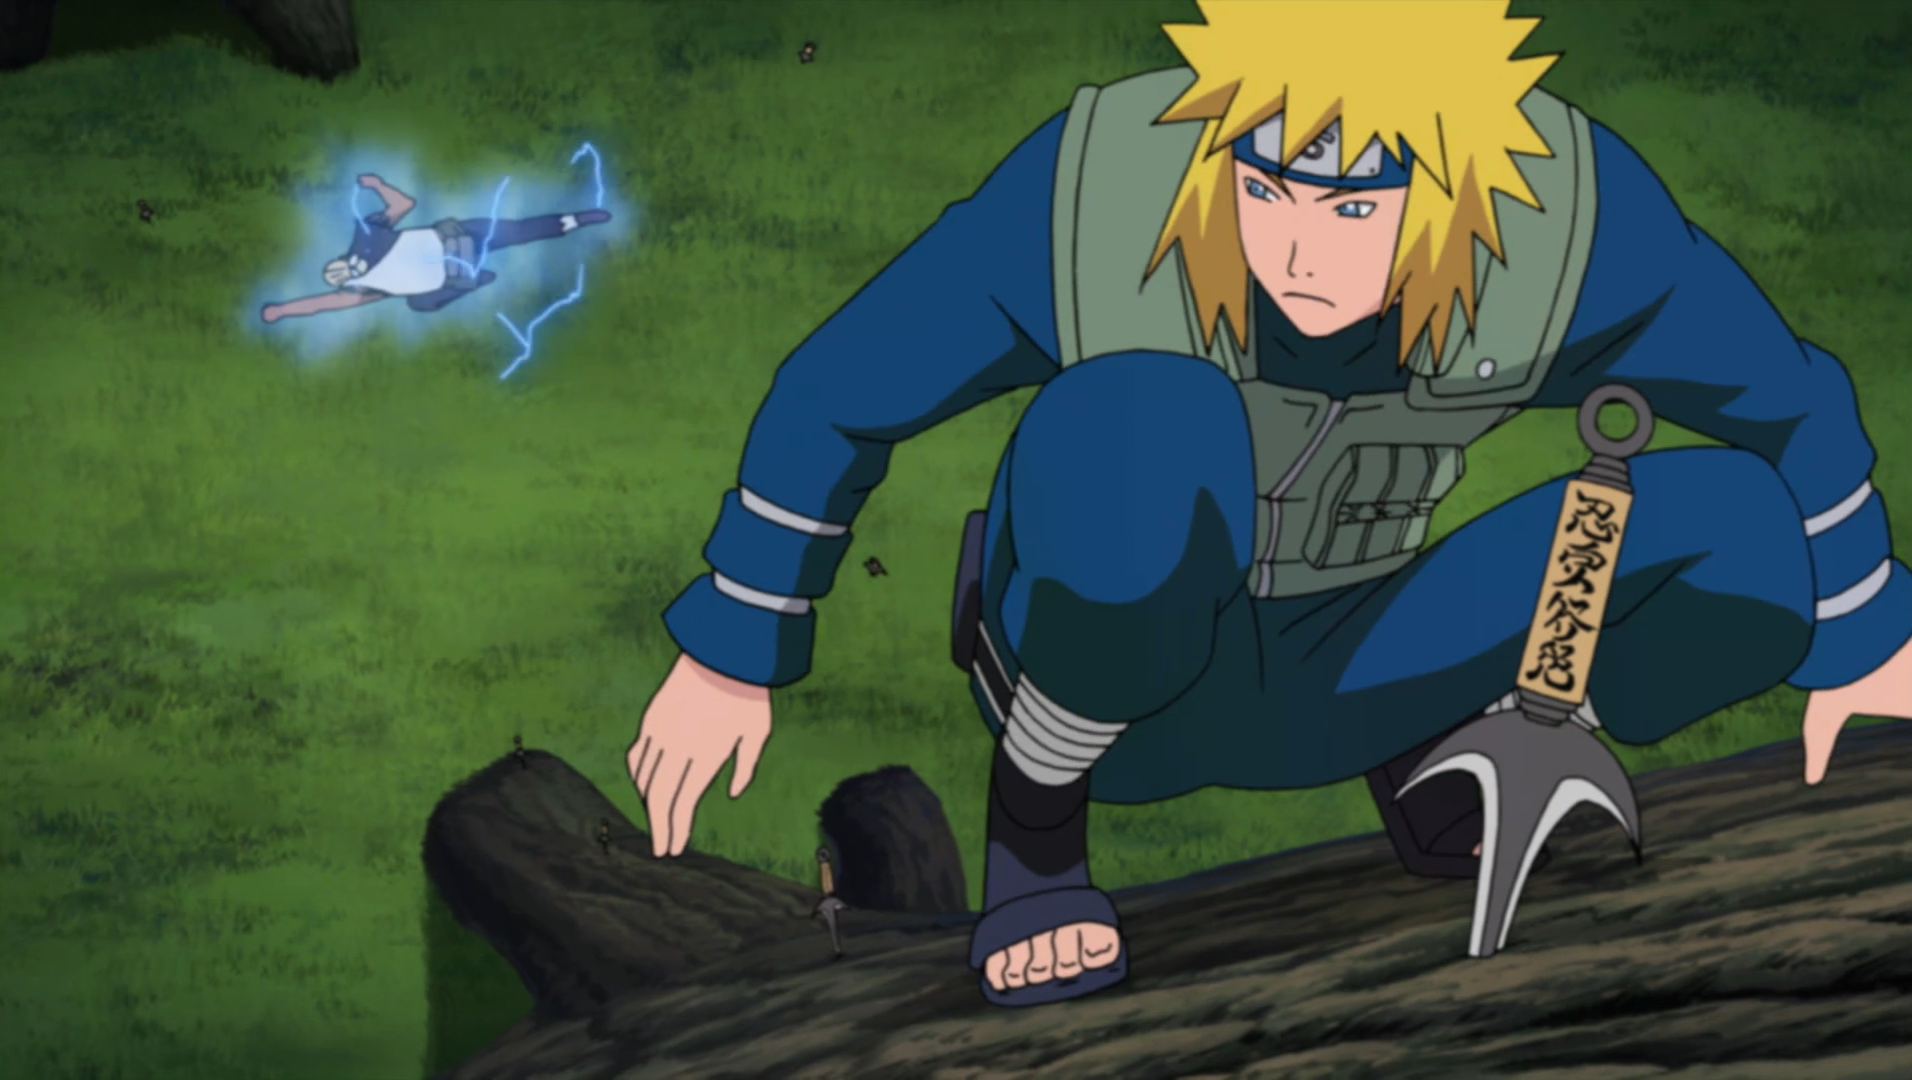 http://images2.wikia.nocookie.net/__cb20121004123402/naruto/images/c/c6/Minato_flies_to_a_kunai.png